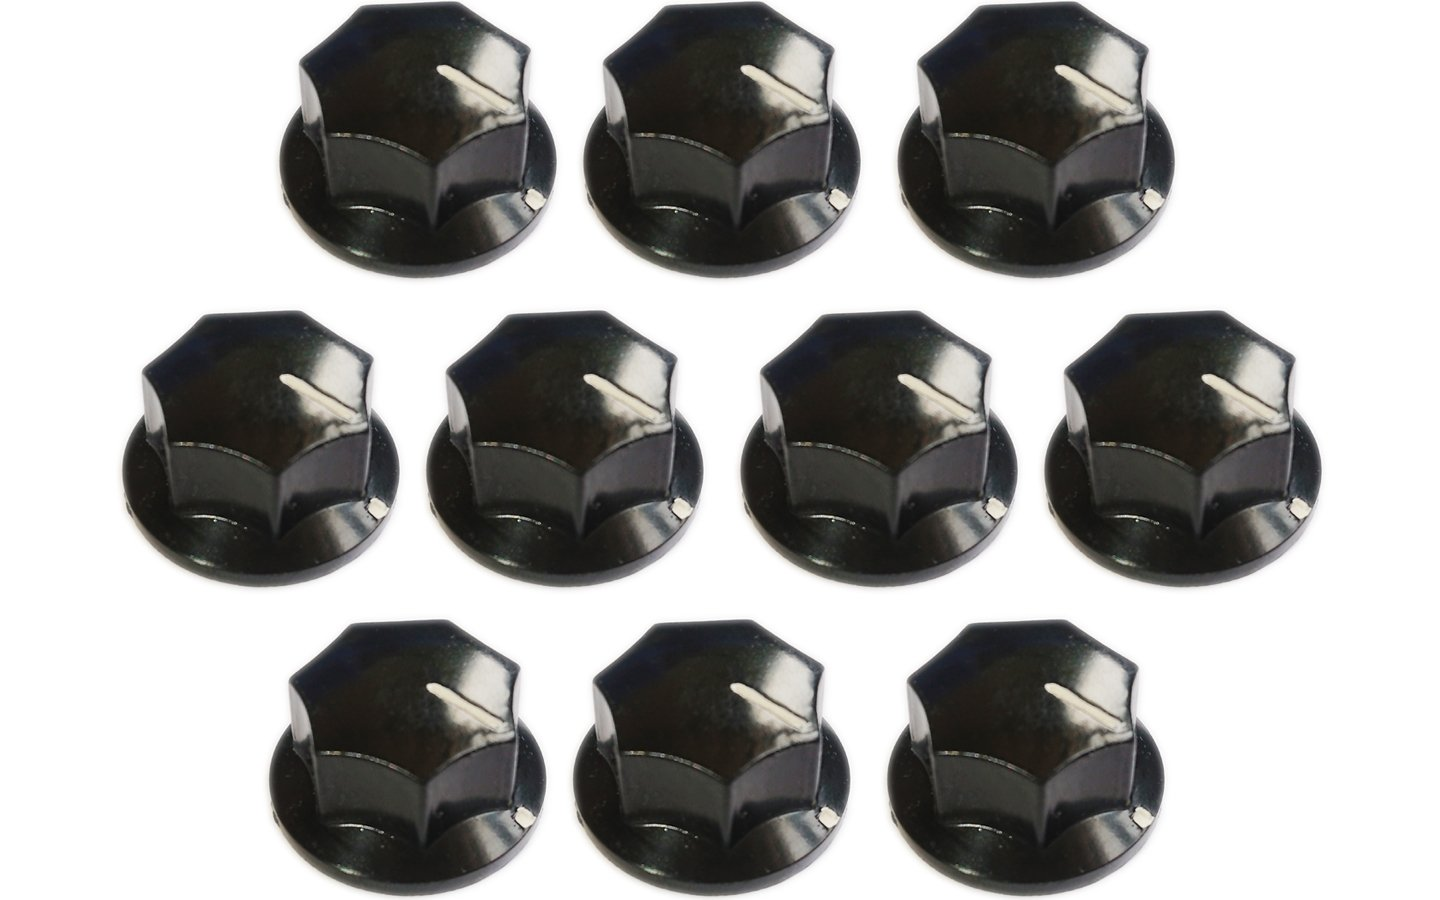 Actopus 10PCS Pot Radio Knobs Audio Knob Replacement 33x18mm Shaft Hole 6mm for Electronic Volume Control